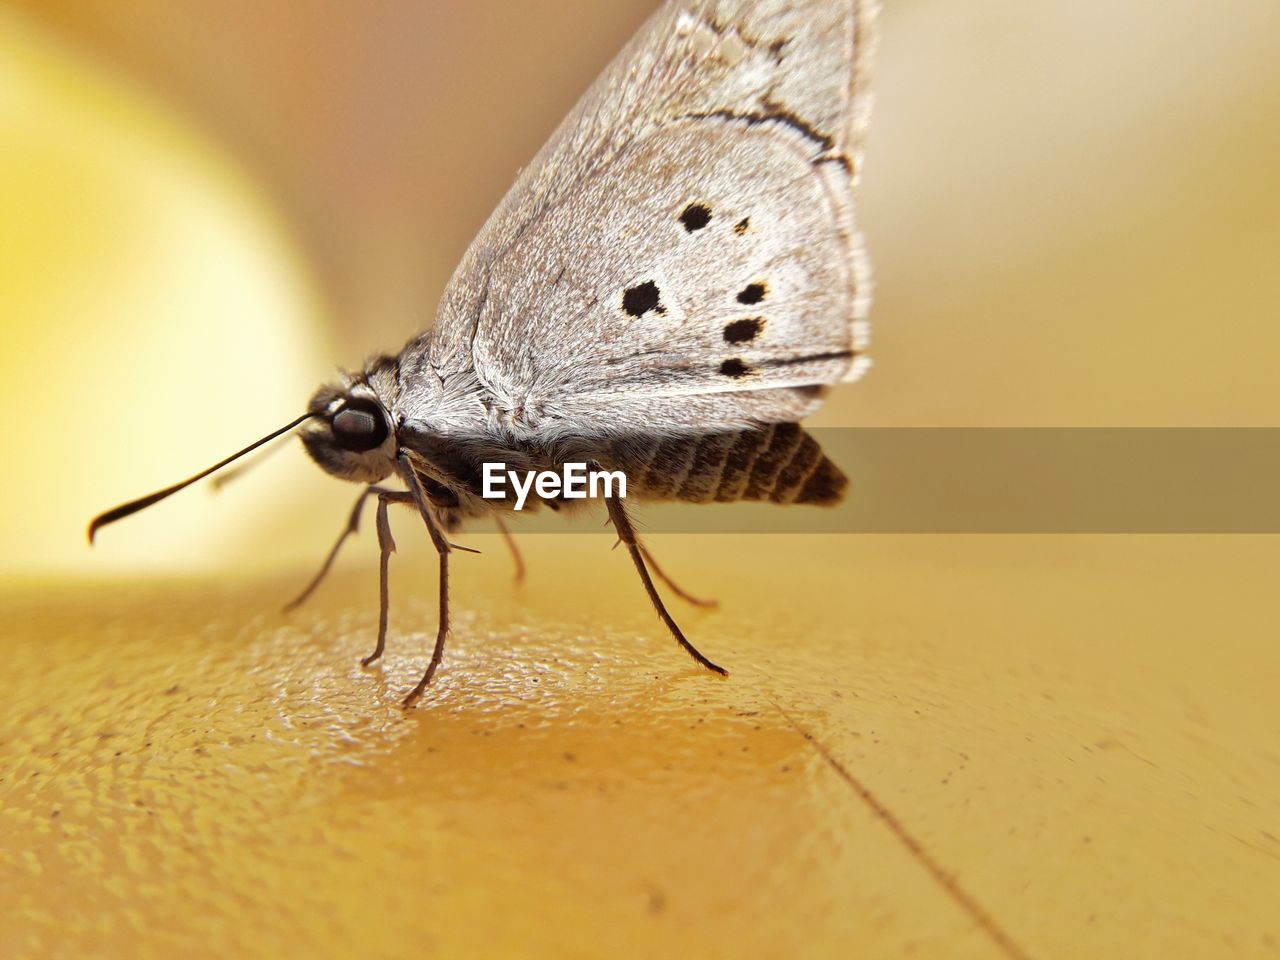 insect, invertebrate, one animal, animal themes, animal, animal wildlife, animals in the wild, close-up, selective focus, animal wing, no people, yellow, animal body part, day, animal antenna, nature, macro, zoology, full length, focus on foreground, butterfly - insect